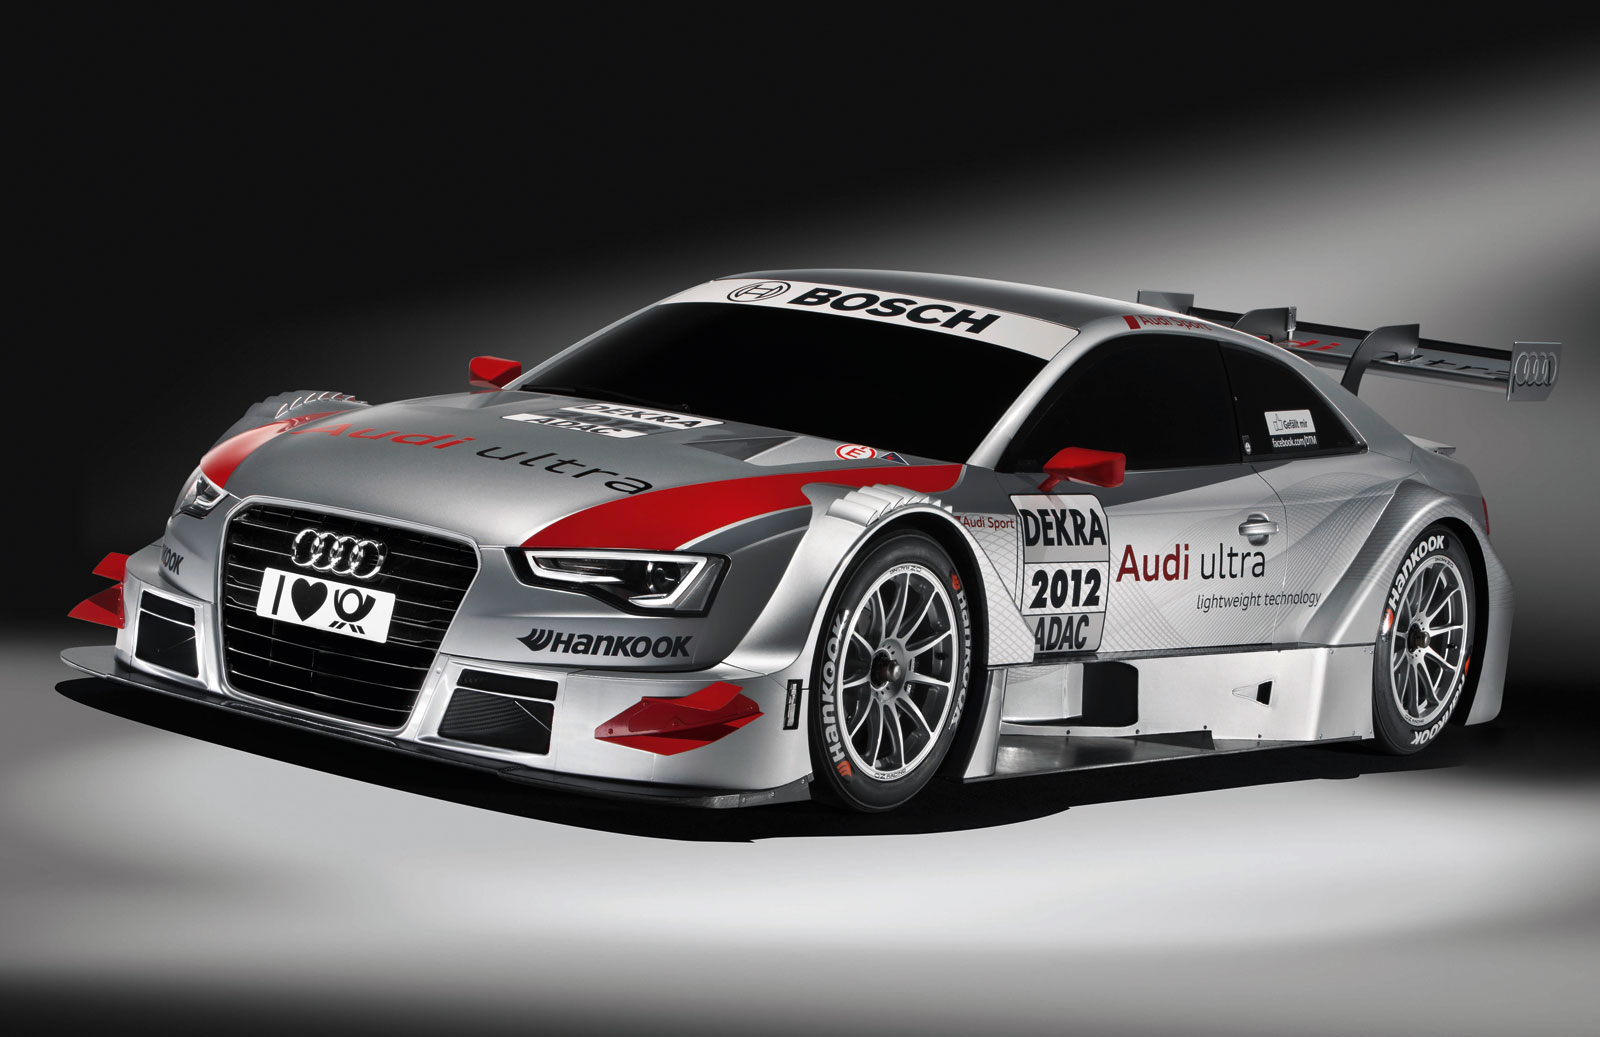 http://2.bp.blogspot.com/-skq1jnS8X4U/T-Cc9x7M_fI/AAAAAAAADmQ/cOstW13L4Vg/s1600/Audi+A5+DTM+Race+Car+hd+Wallpapers+2012_.jpg